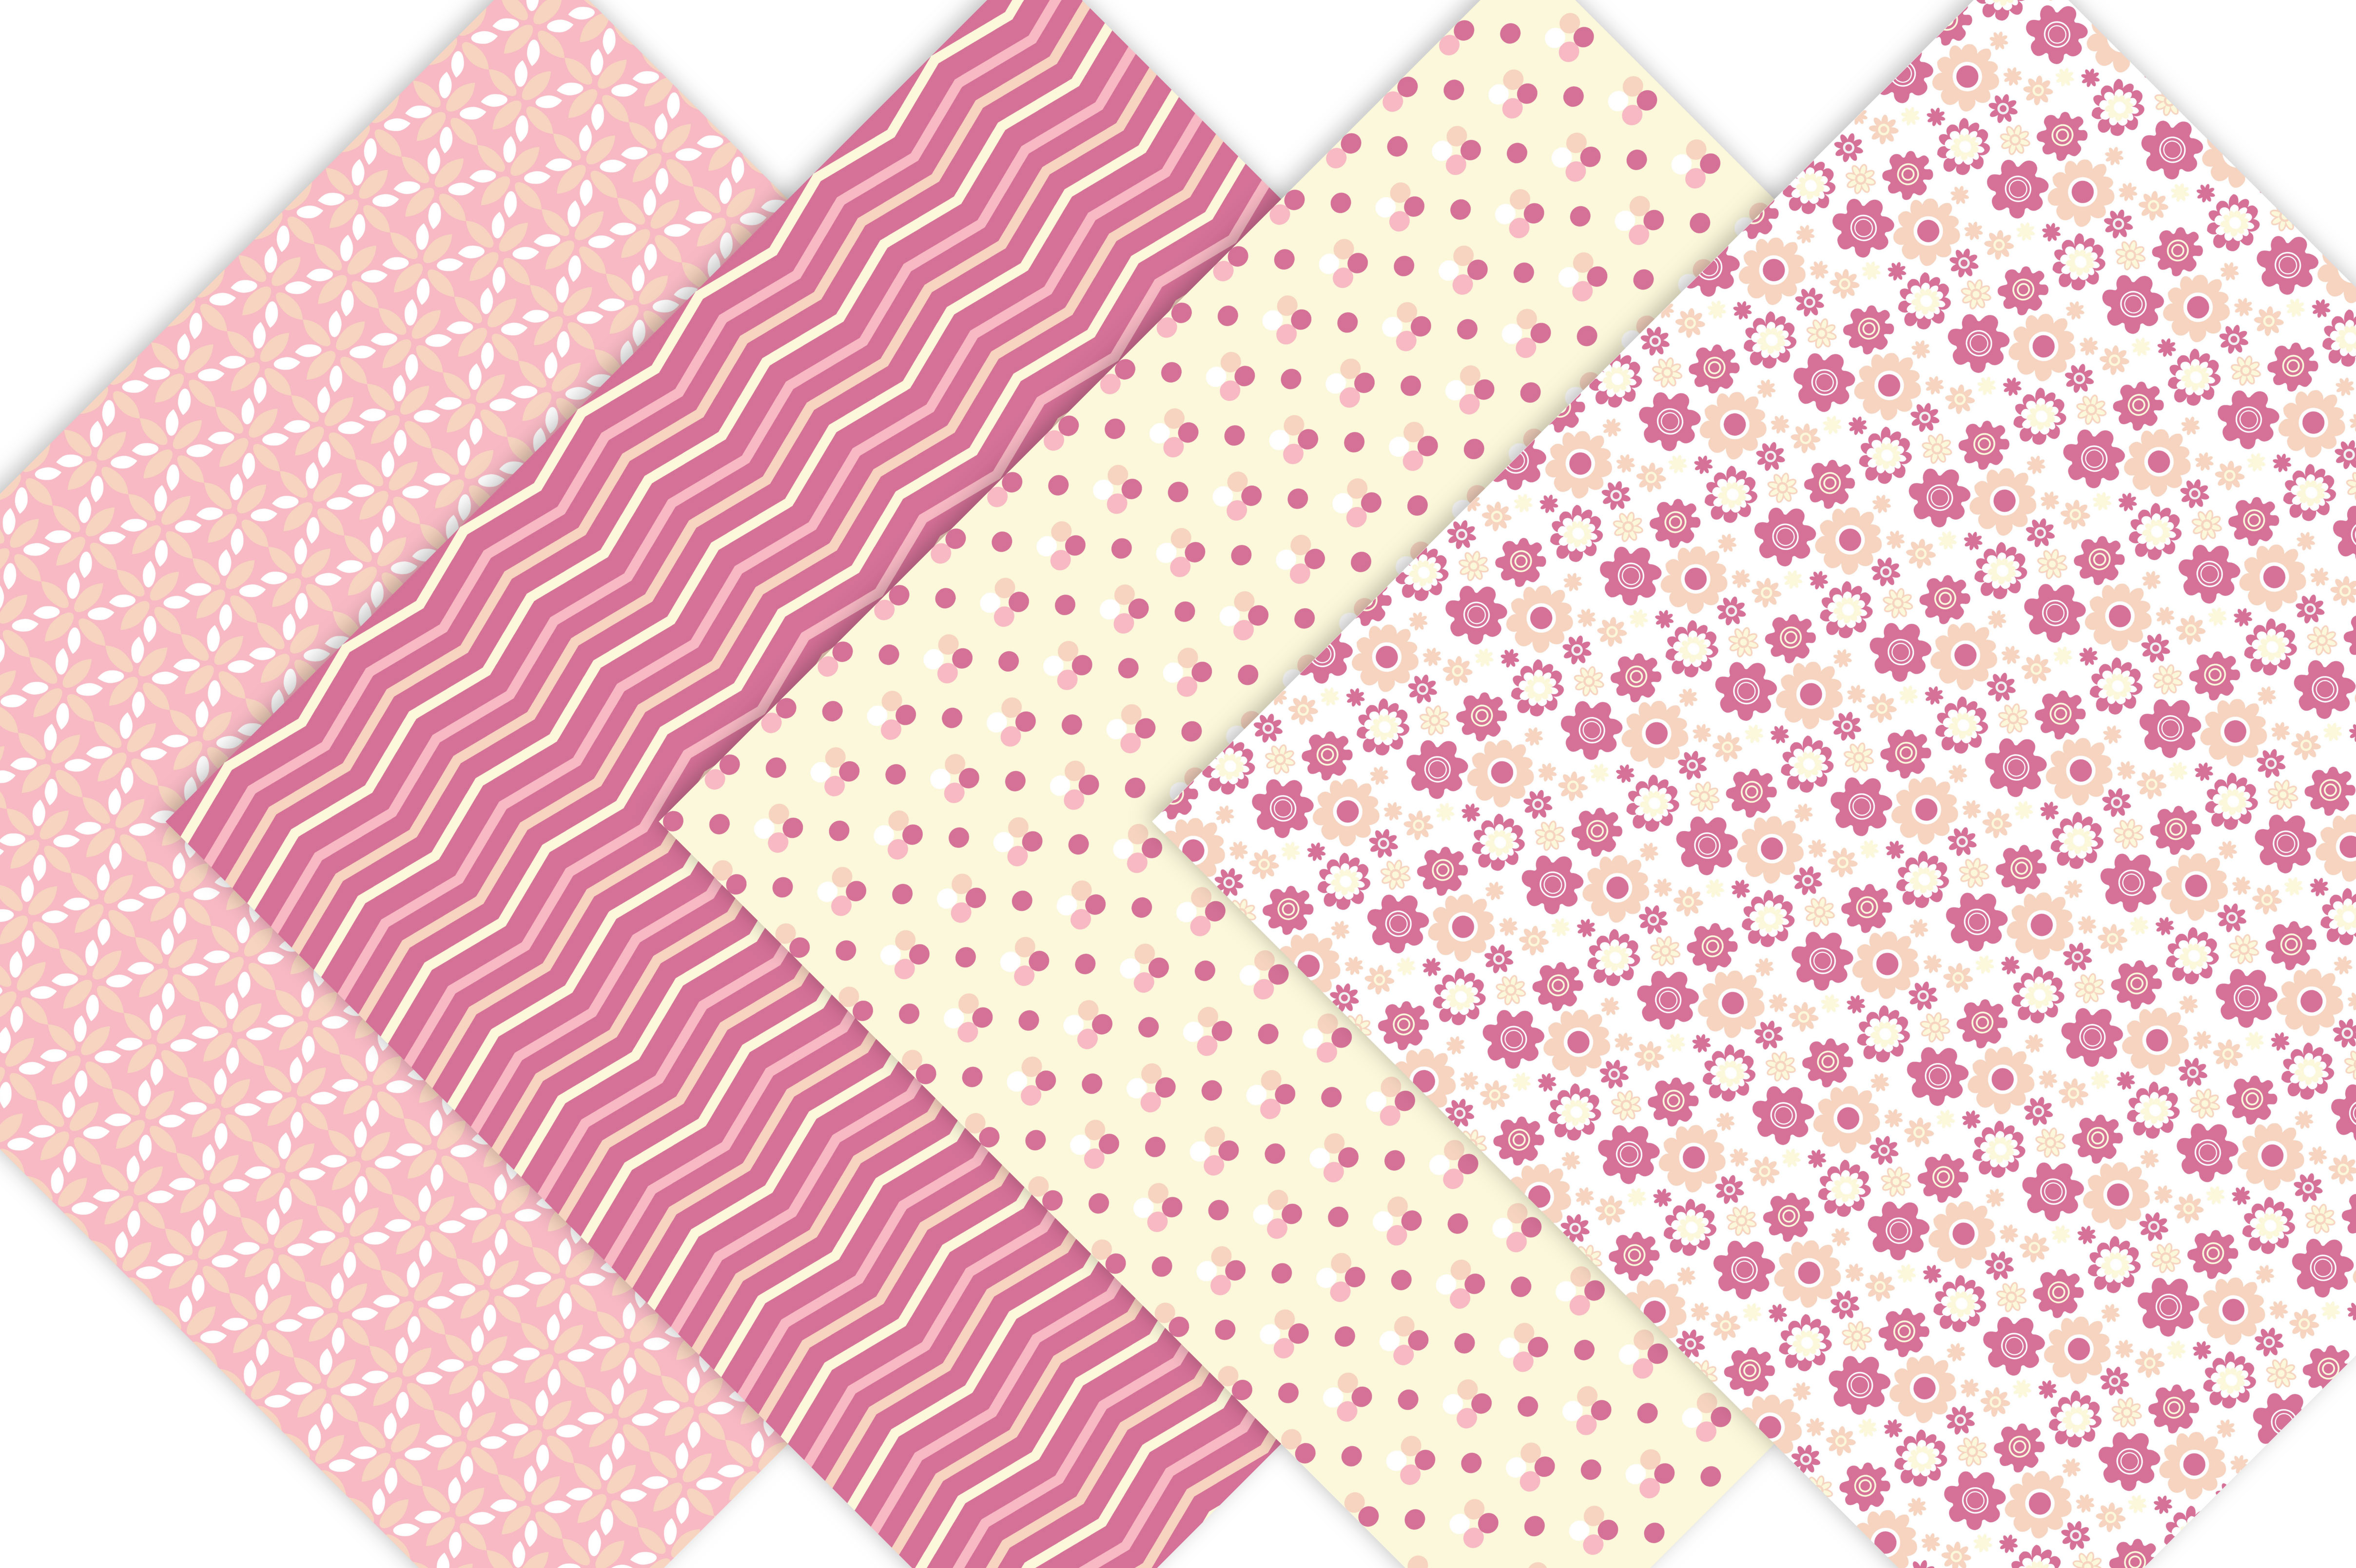 Pink and Yellow Digital Patterns example image 2